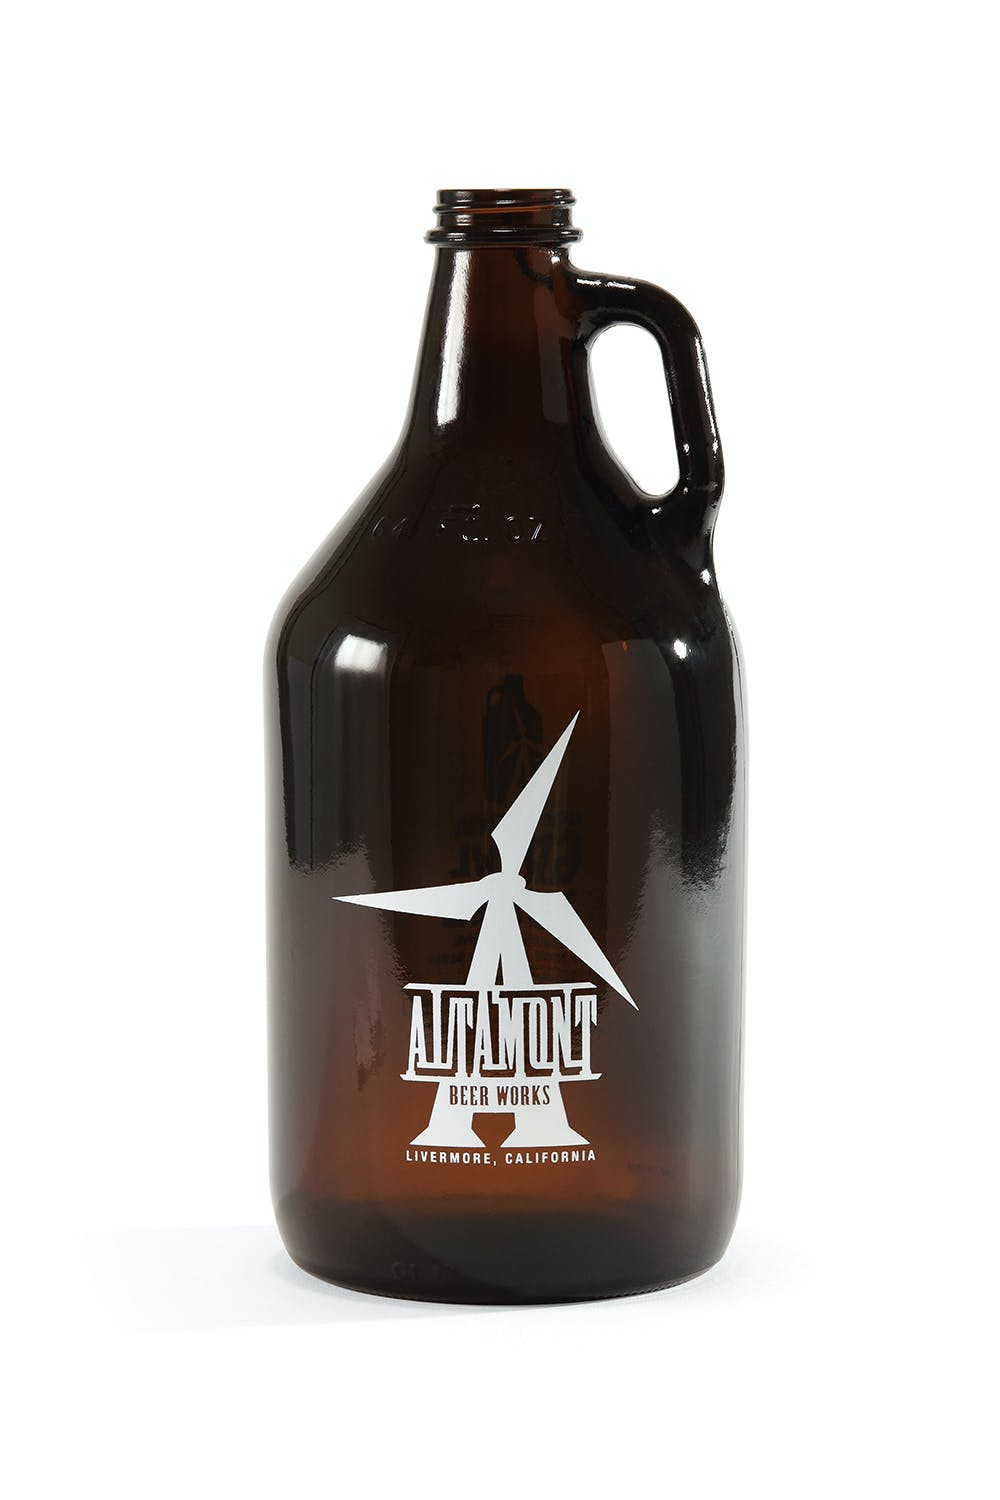 Screen Printed Growlers - sold by Bottleprint